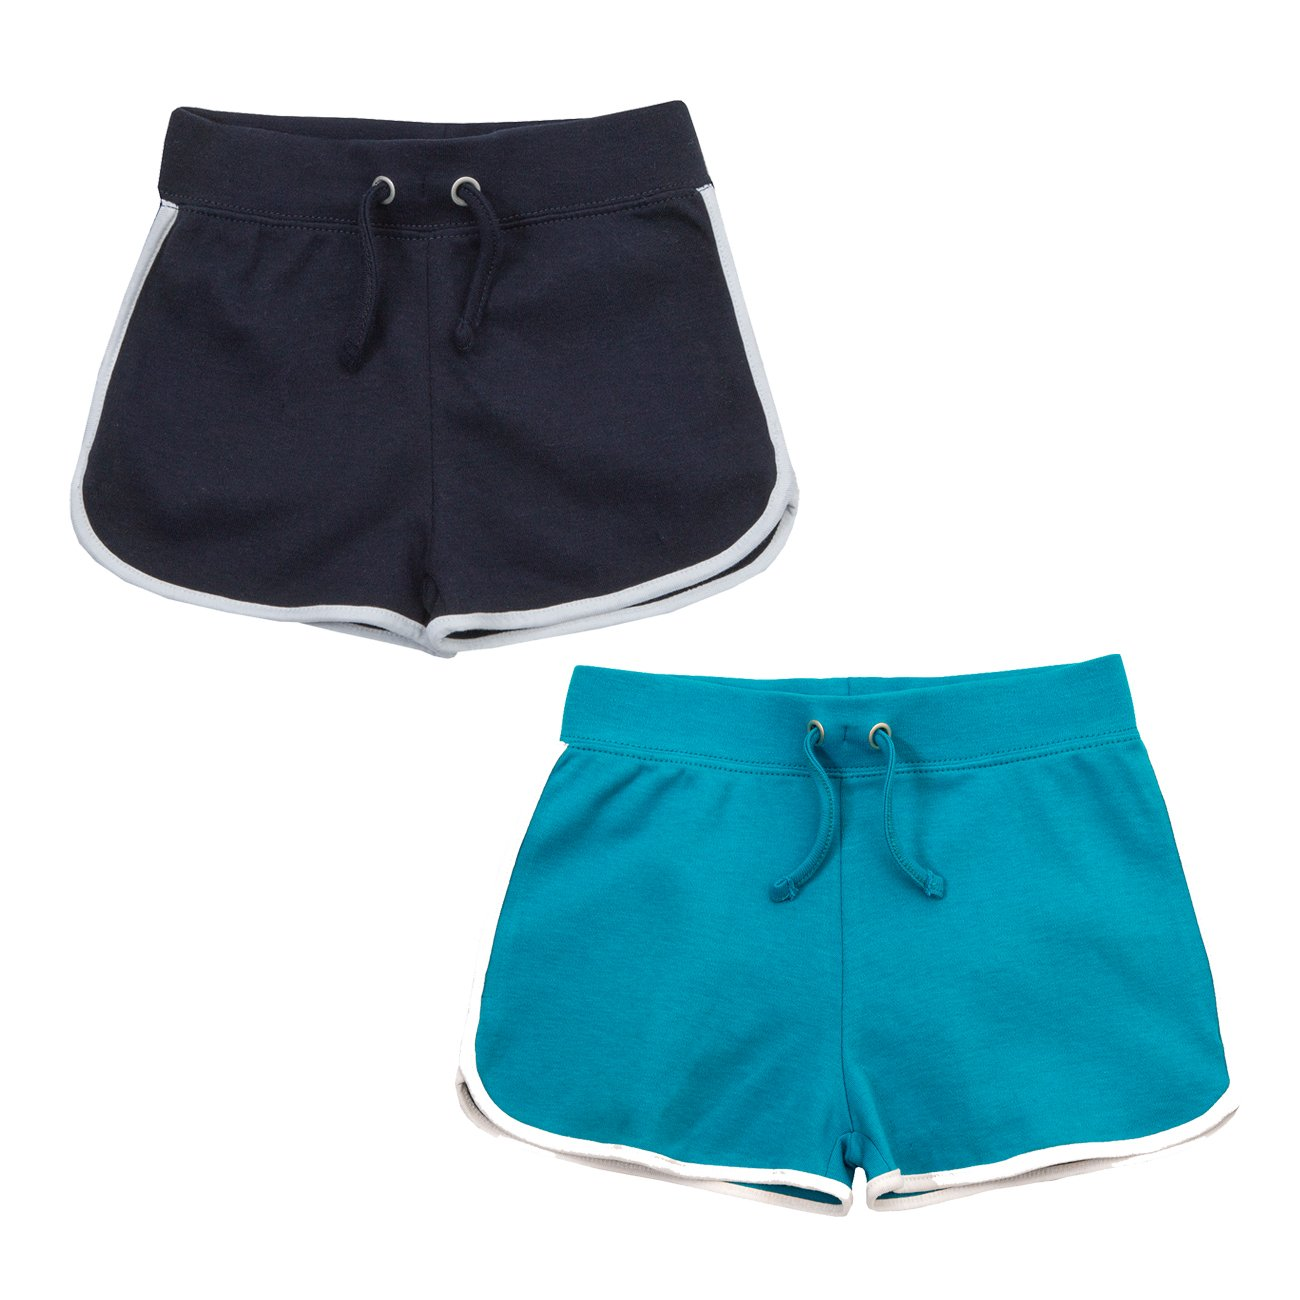 Red Melon Infant Girls Retro Shorts Cotton Summer Bottoms Navy and Turquoise 4-5 Years